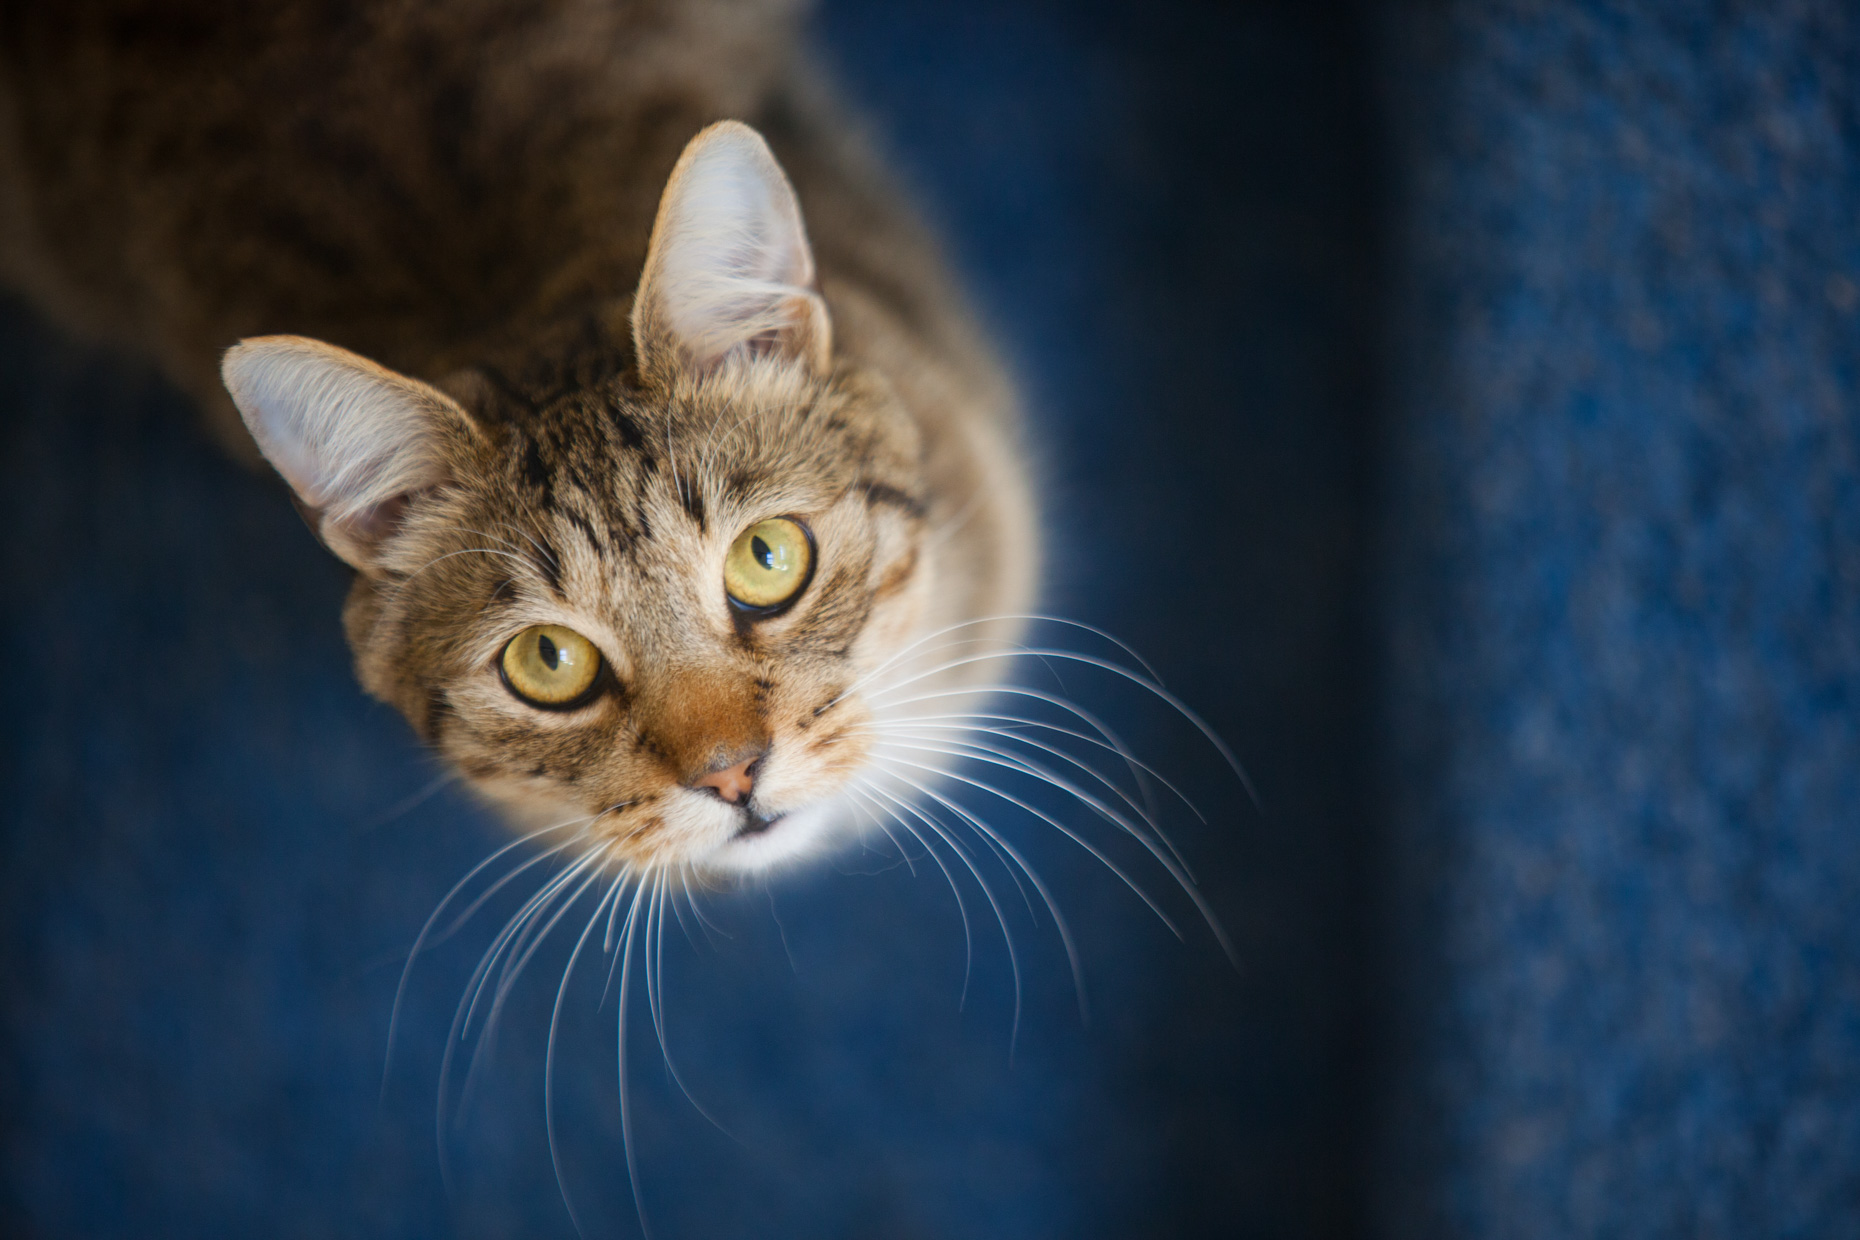 Cat and Pet Photography | Tabby Cat Looking Up by Mark Rogers